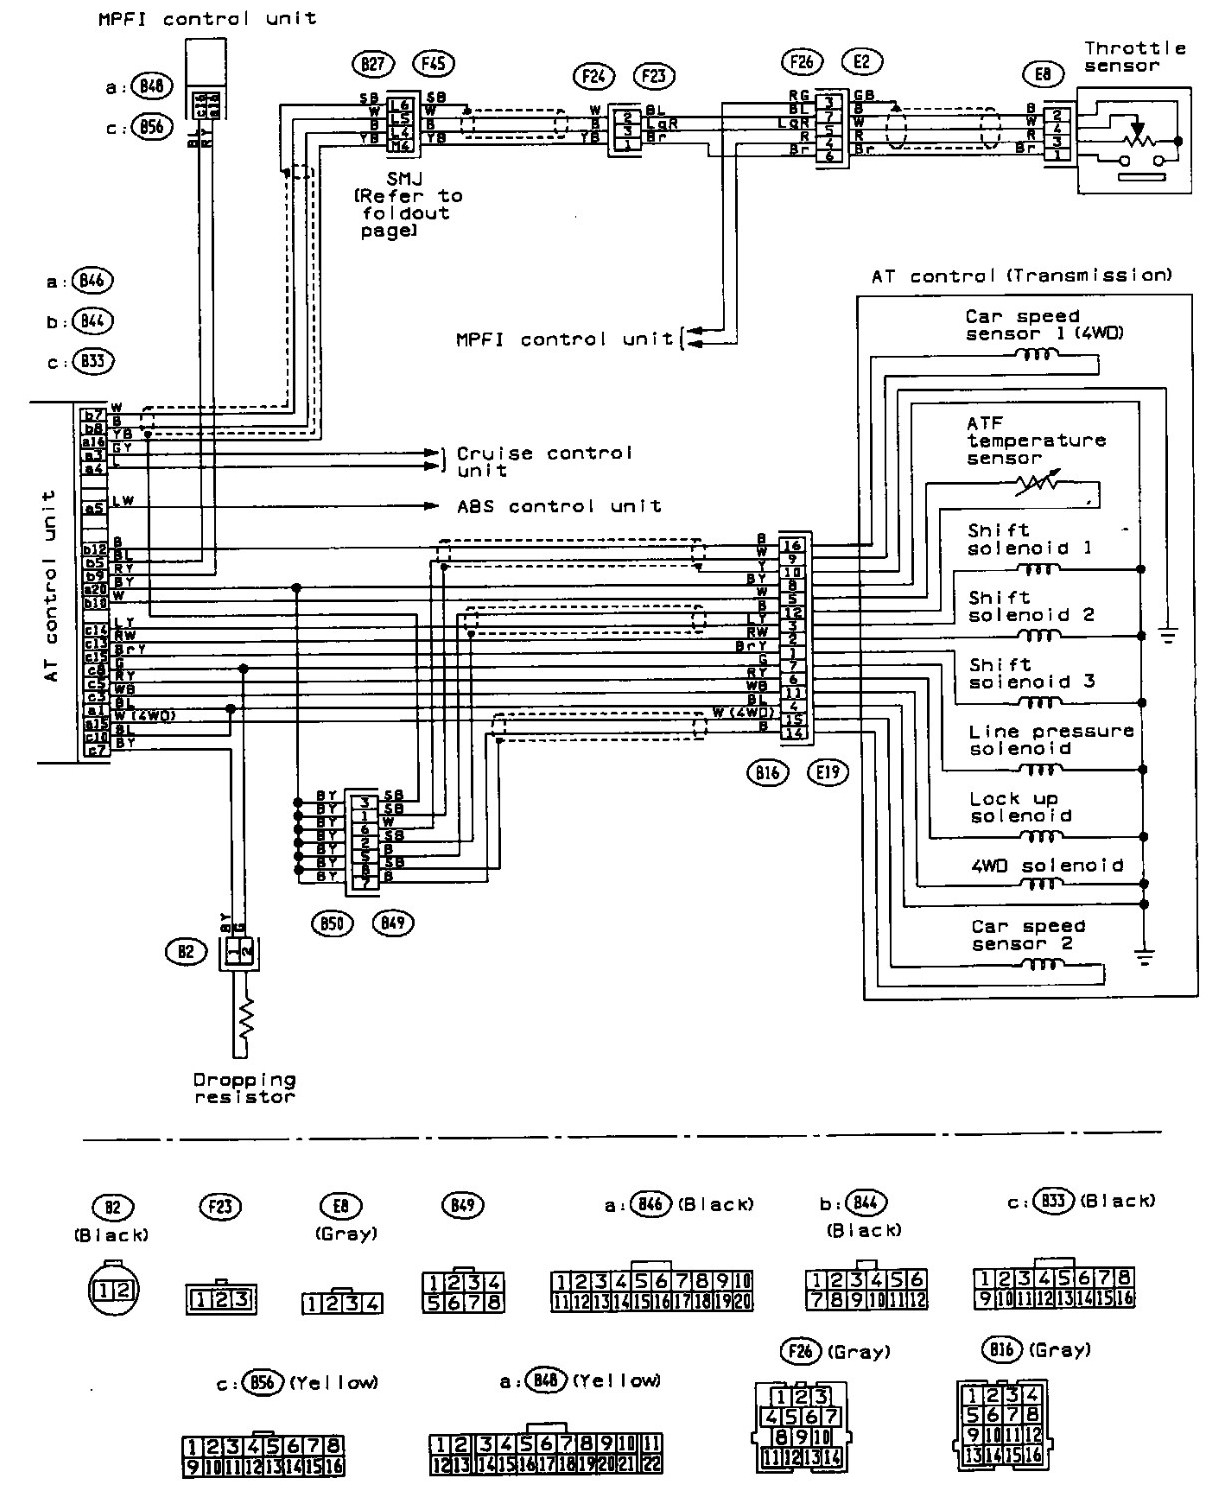 2009 subaru forester wiring diagram 2000 subaru legacy wiring diagram pdf wiring diagram data  2000 subaru legacy wiring diagram pdf